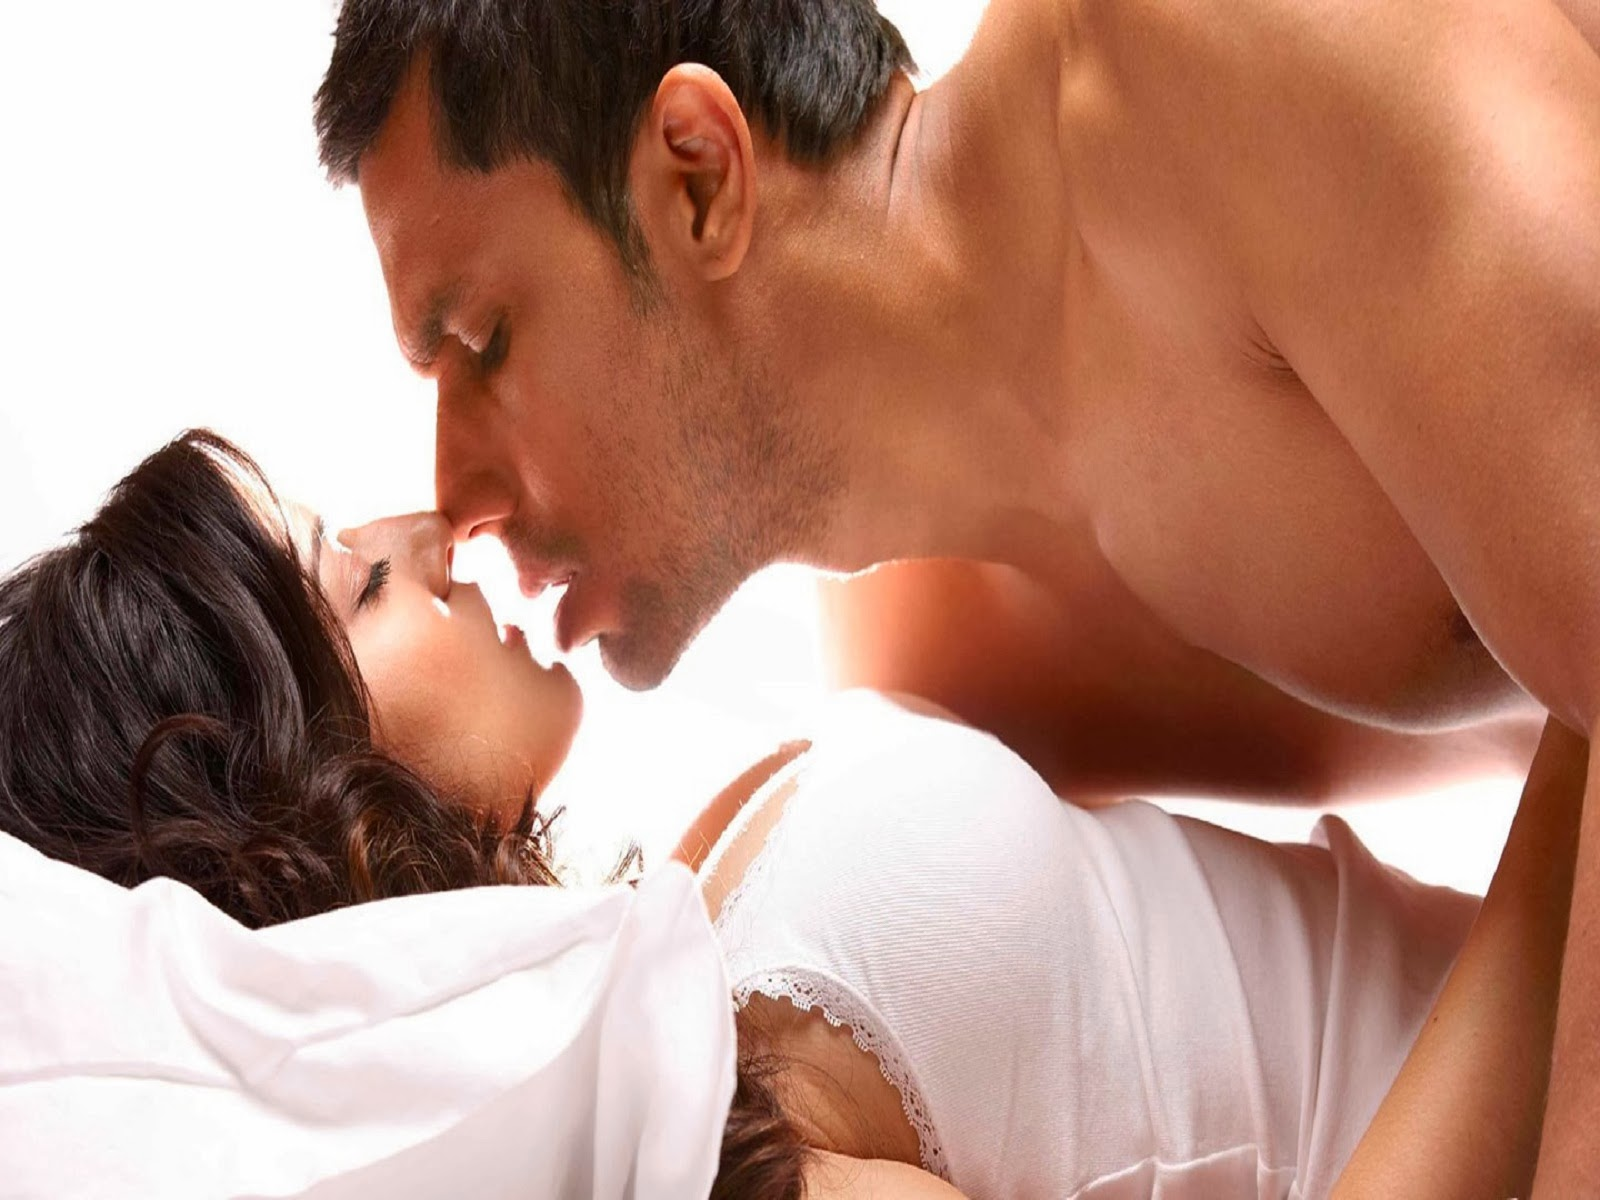 jism2 sunny leone hot kiss in bed very hot sexy bold wallpapers images pics group